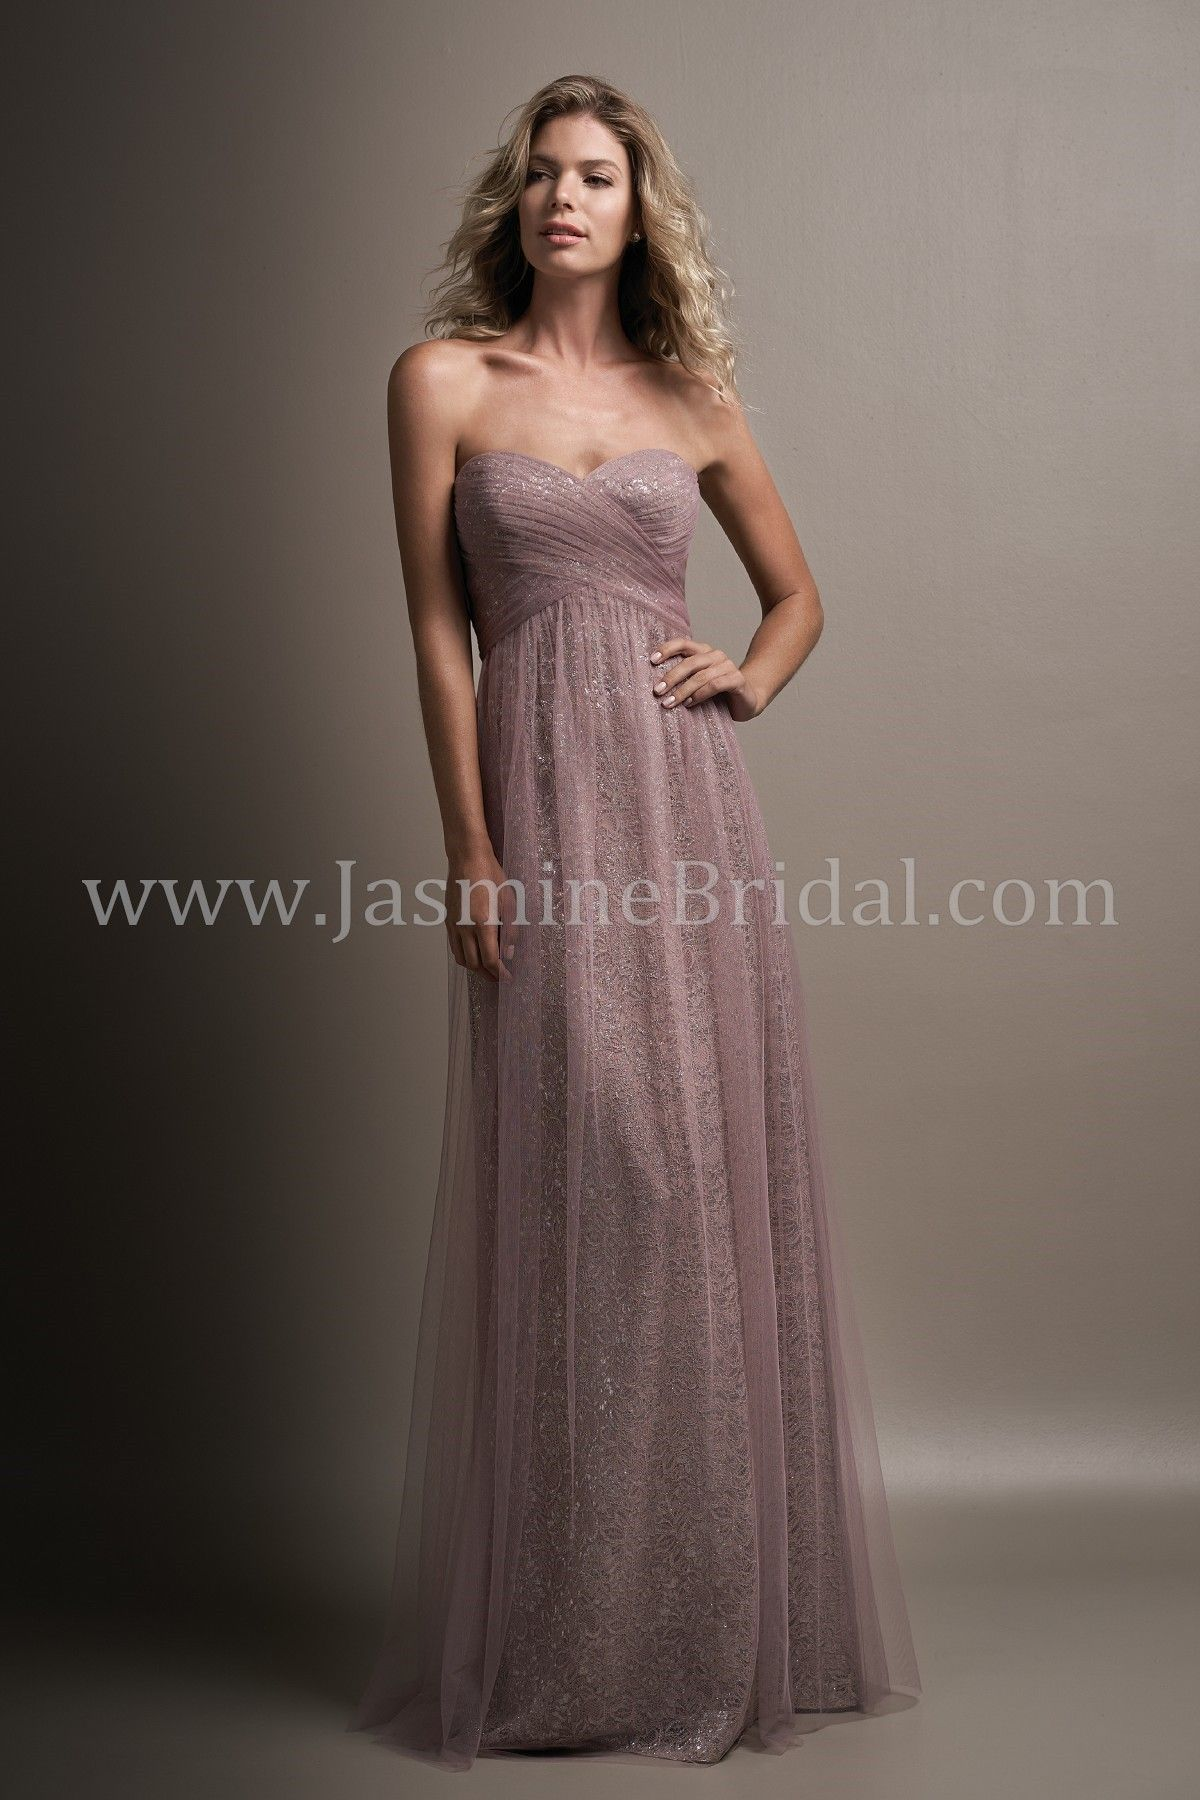 Jasmine bridal style l194002available at debras bridal shop jasmine bridal belsoie style in sandbar ombrellifo Images